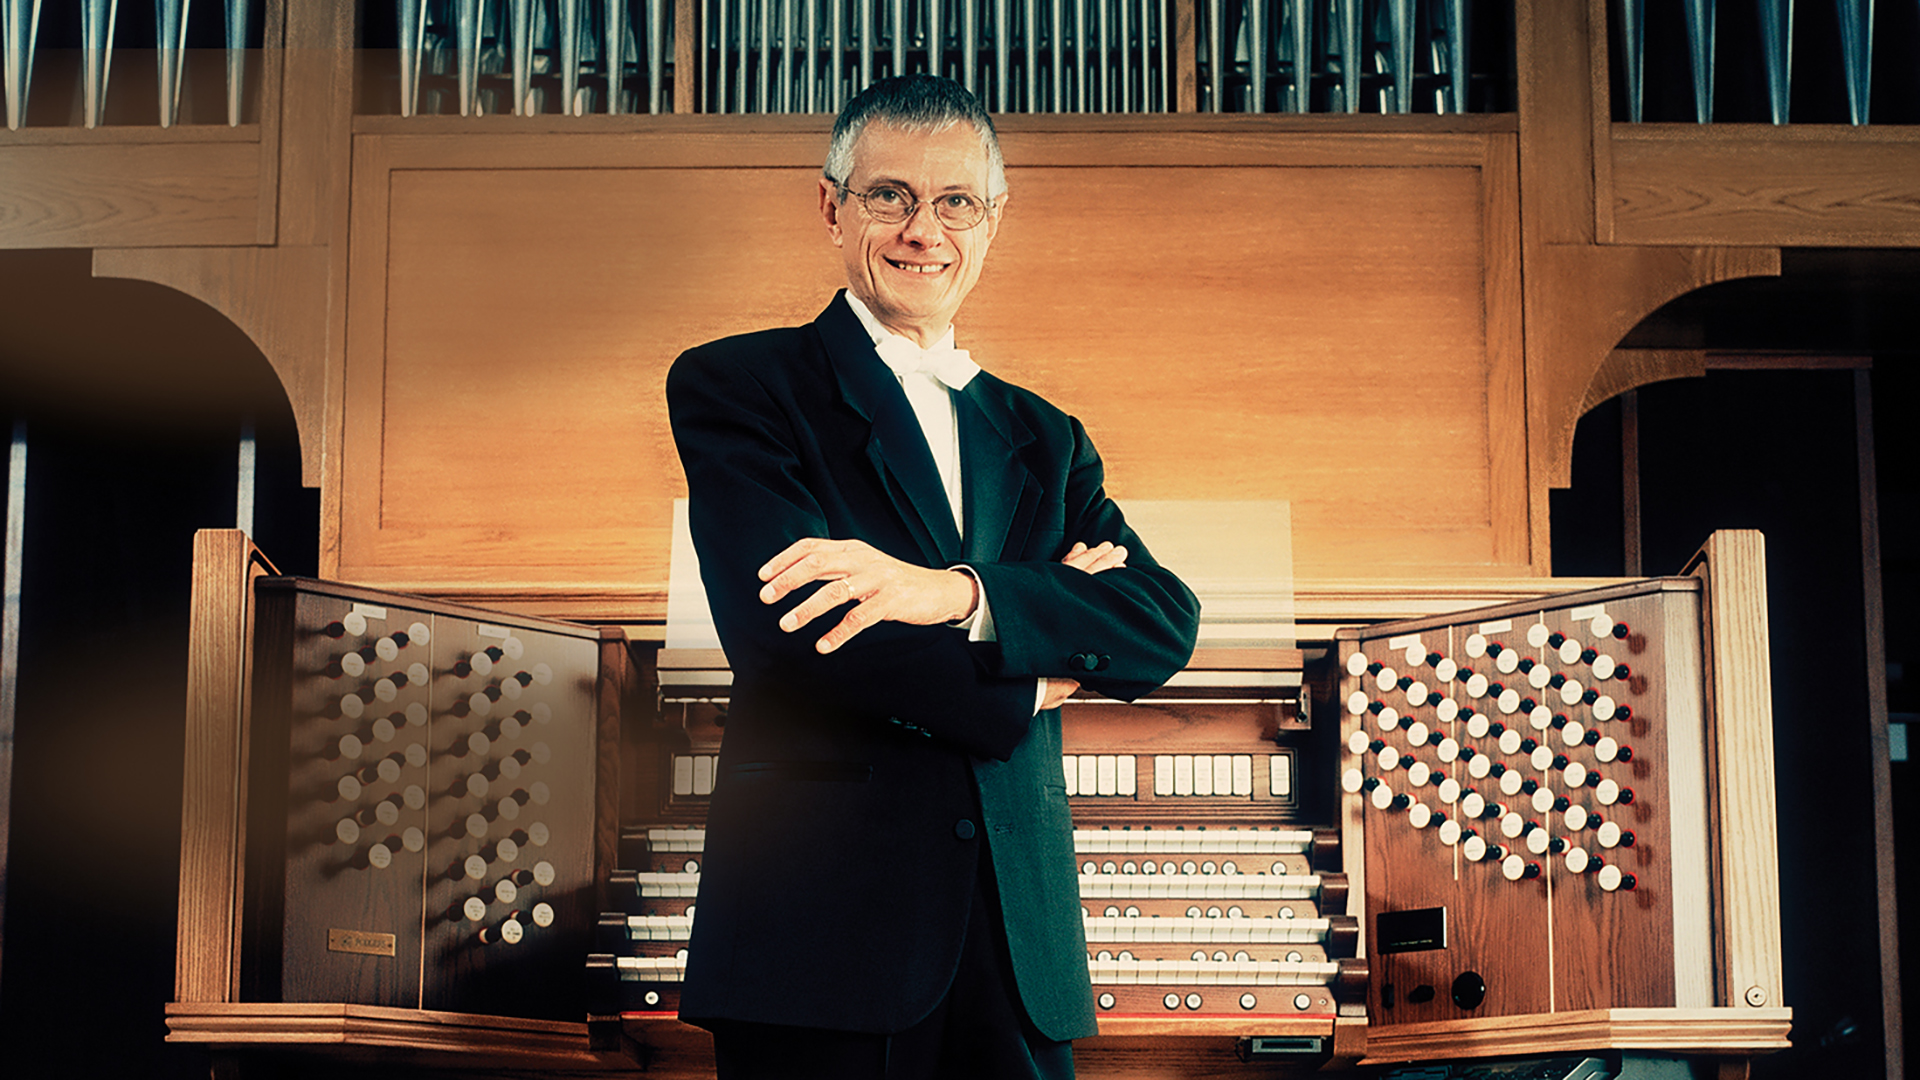 FASO to open season with internationally acclaimed organist